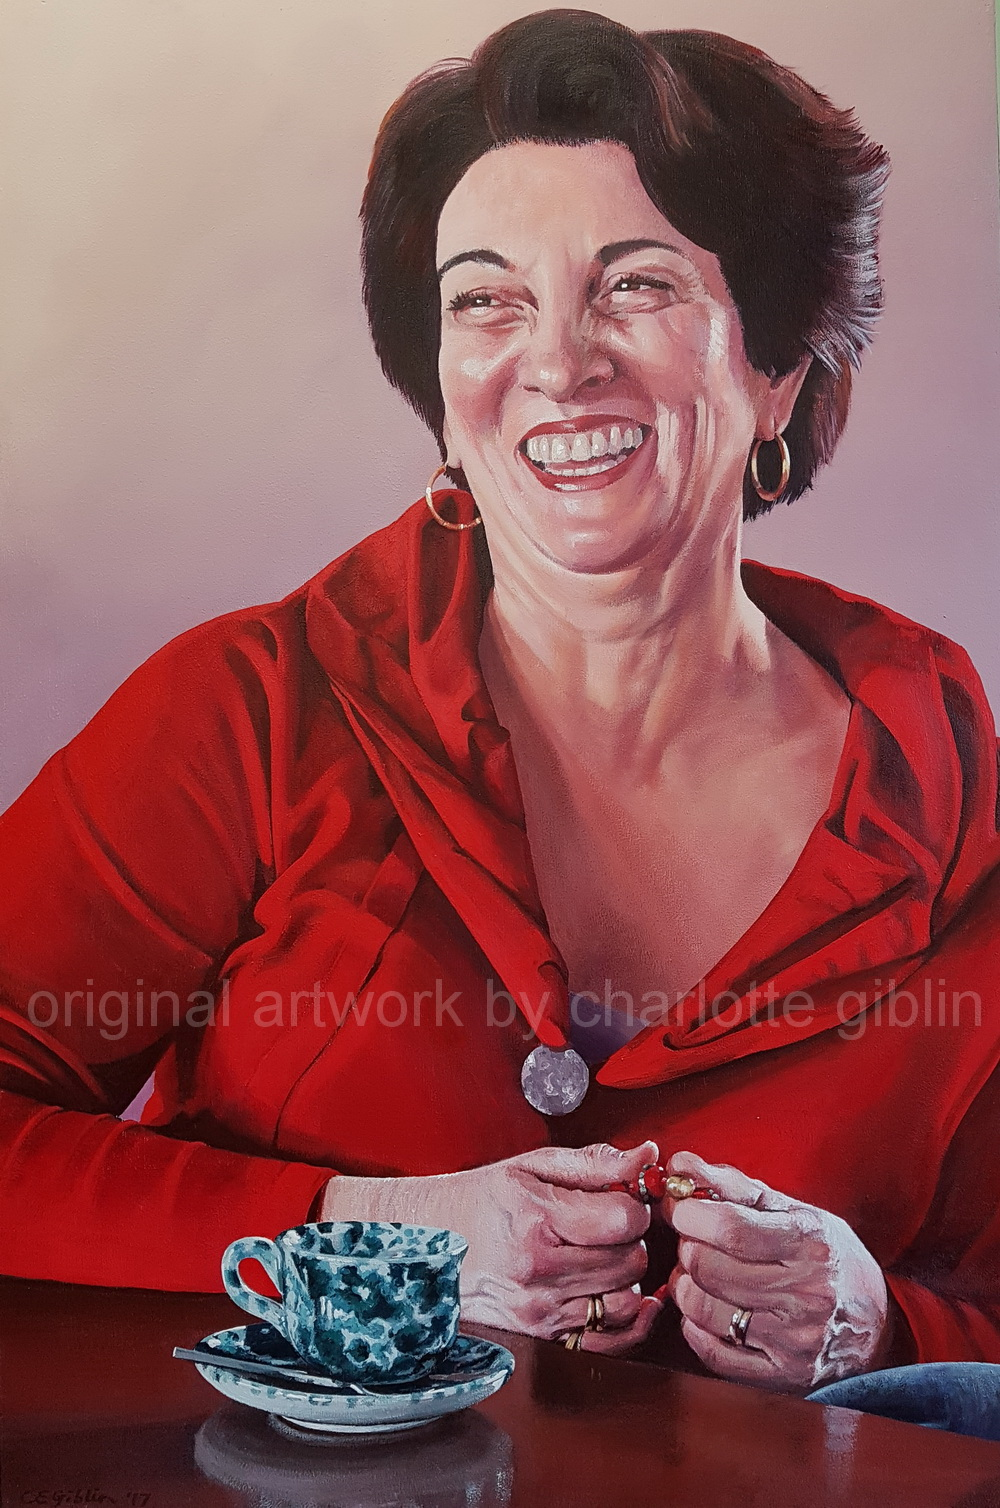 A Perfect Measure of Margherita 900 x 600mm acrylic on ply frame $4,990 from my 2018 portrait exhibition 'What Matters Most' at Bread & Butter Gallery, Whitianga